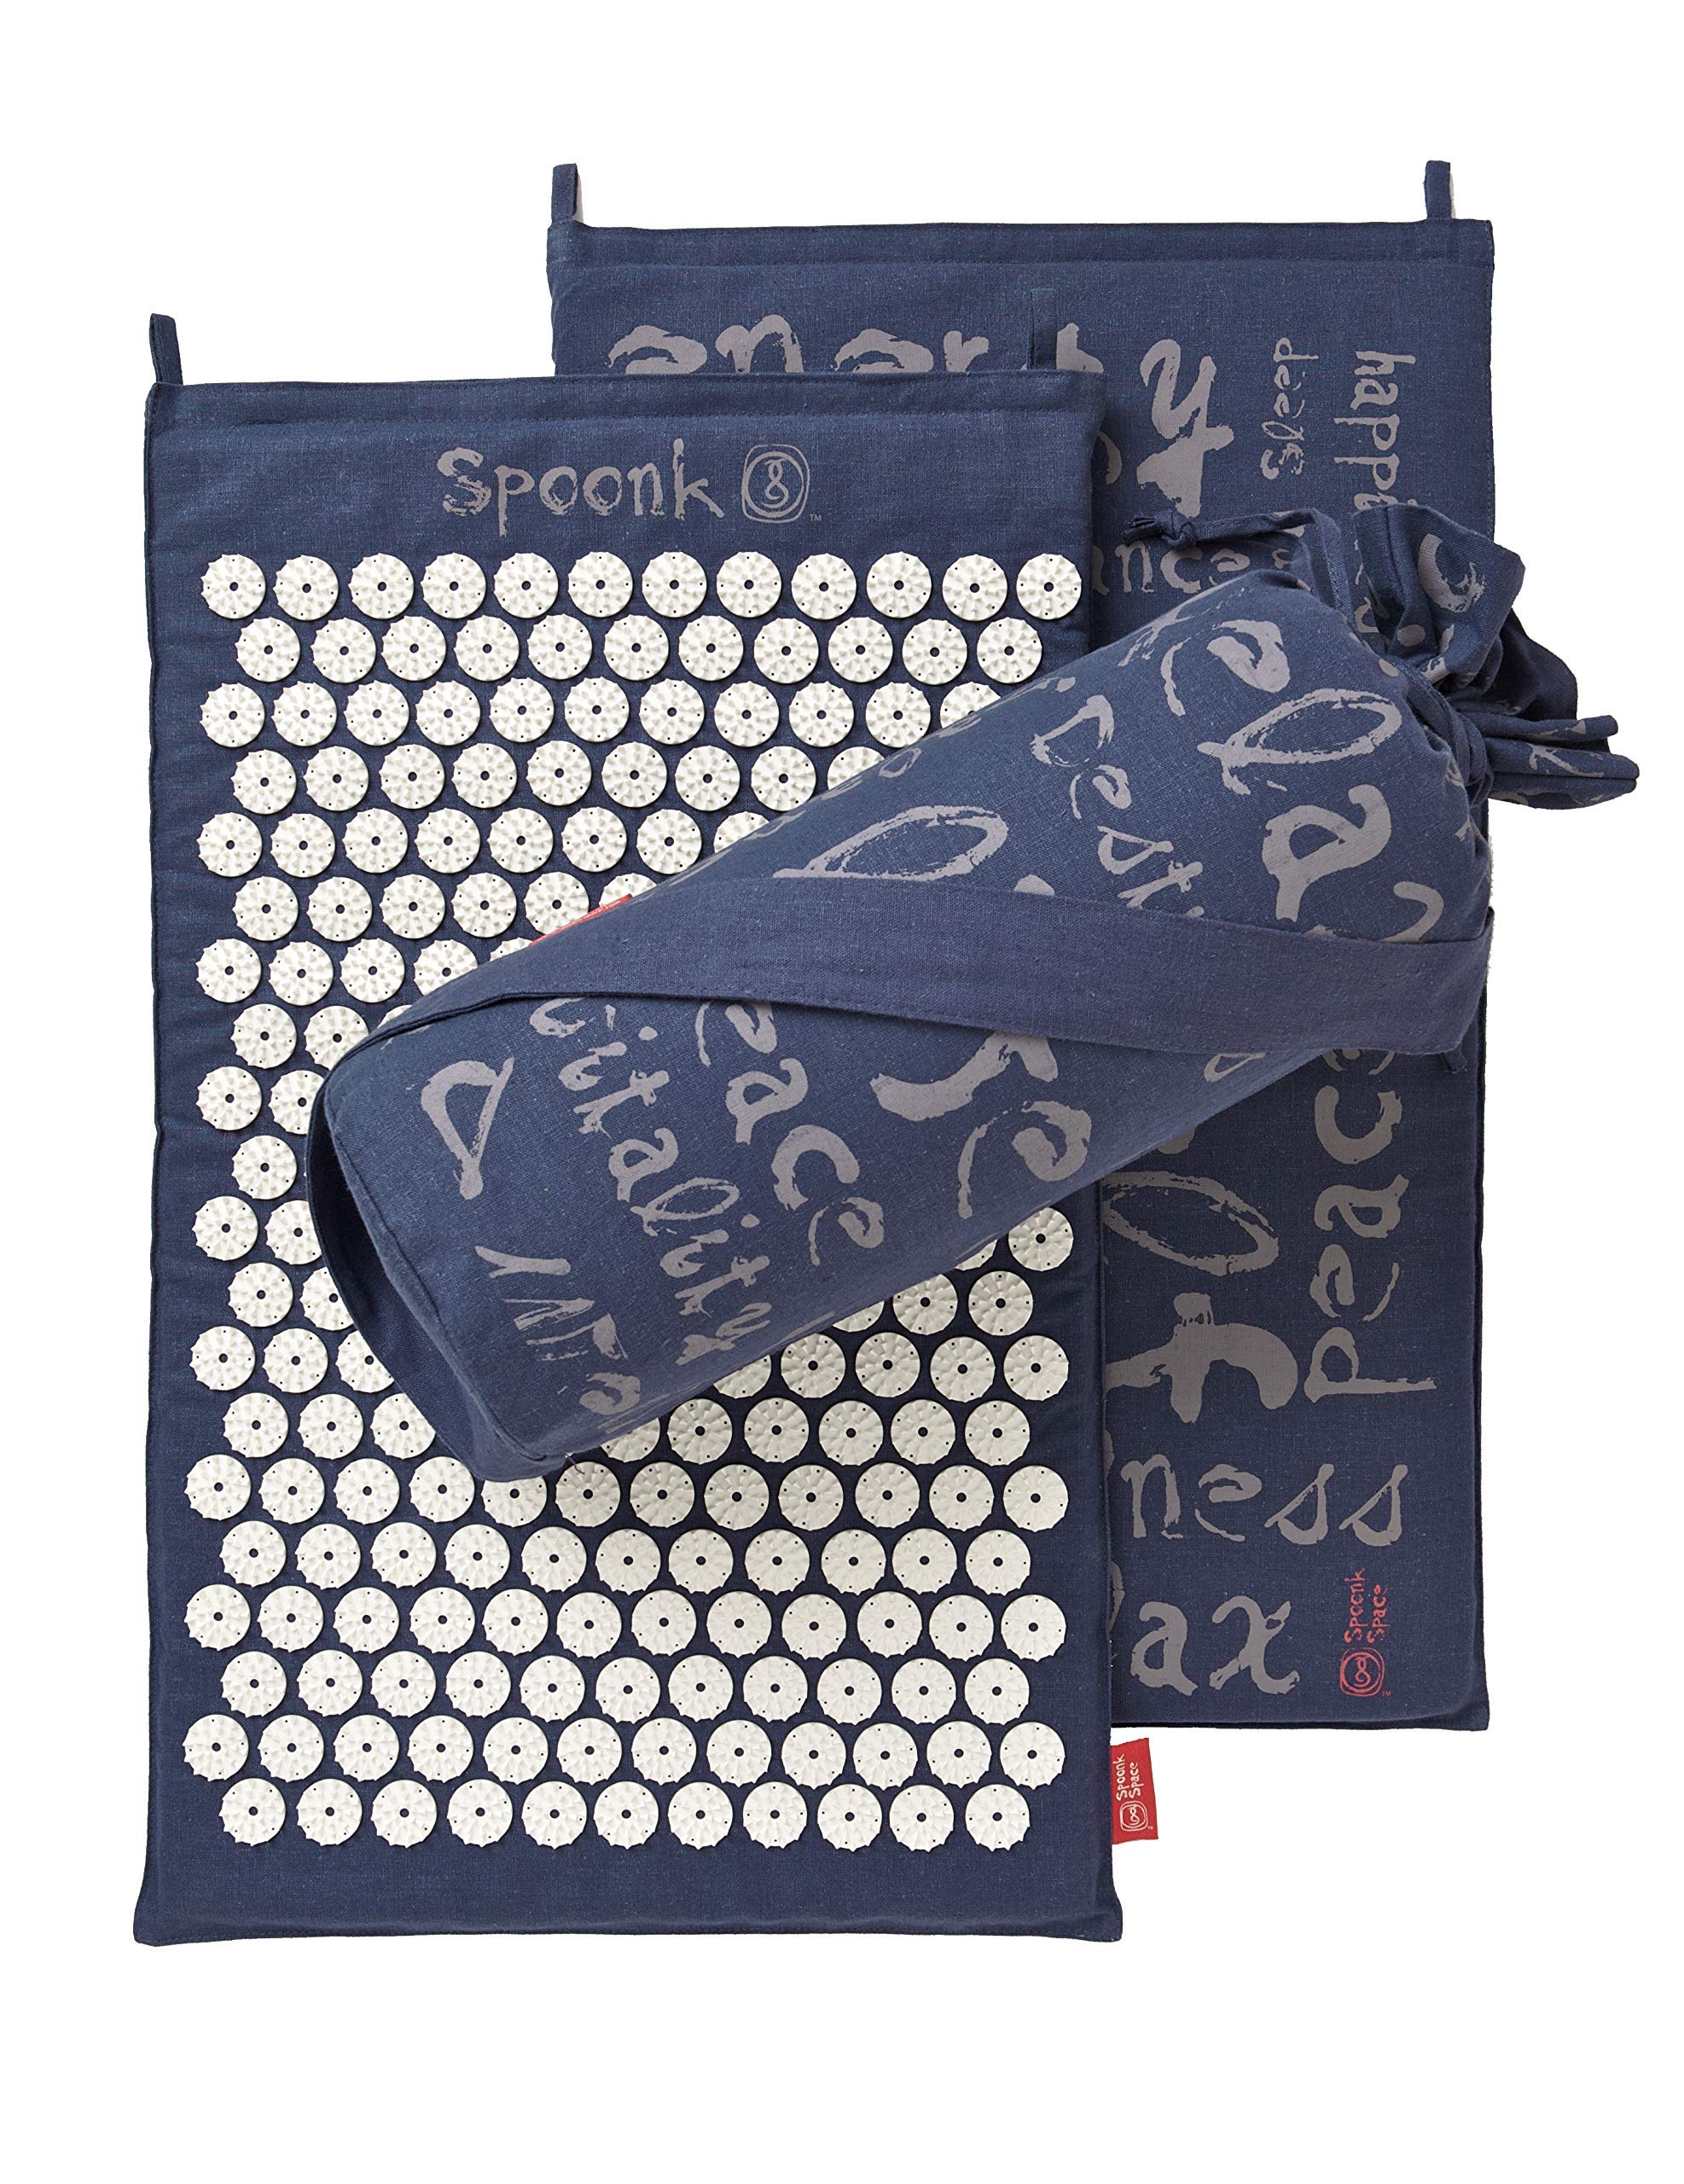 Midnight Blue Hemp Acupressure Massage Mat with Carry-Bag by Spoonk